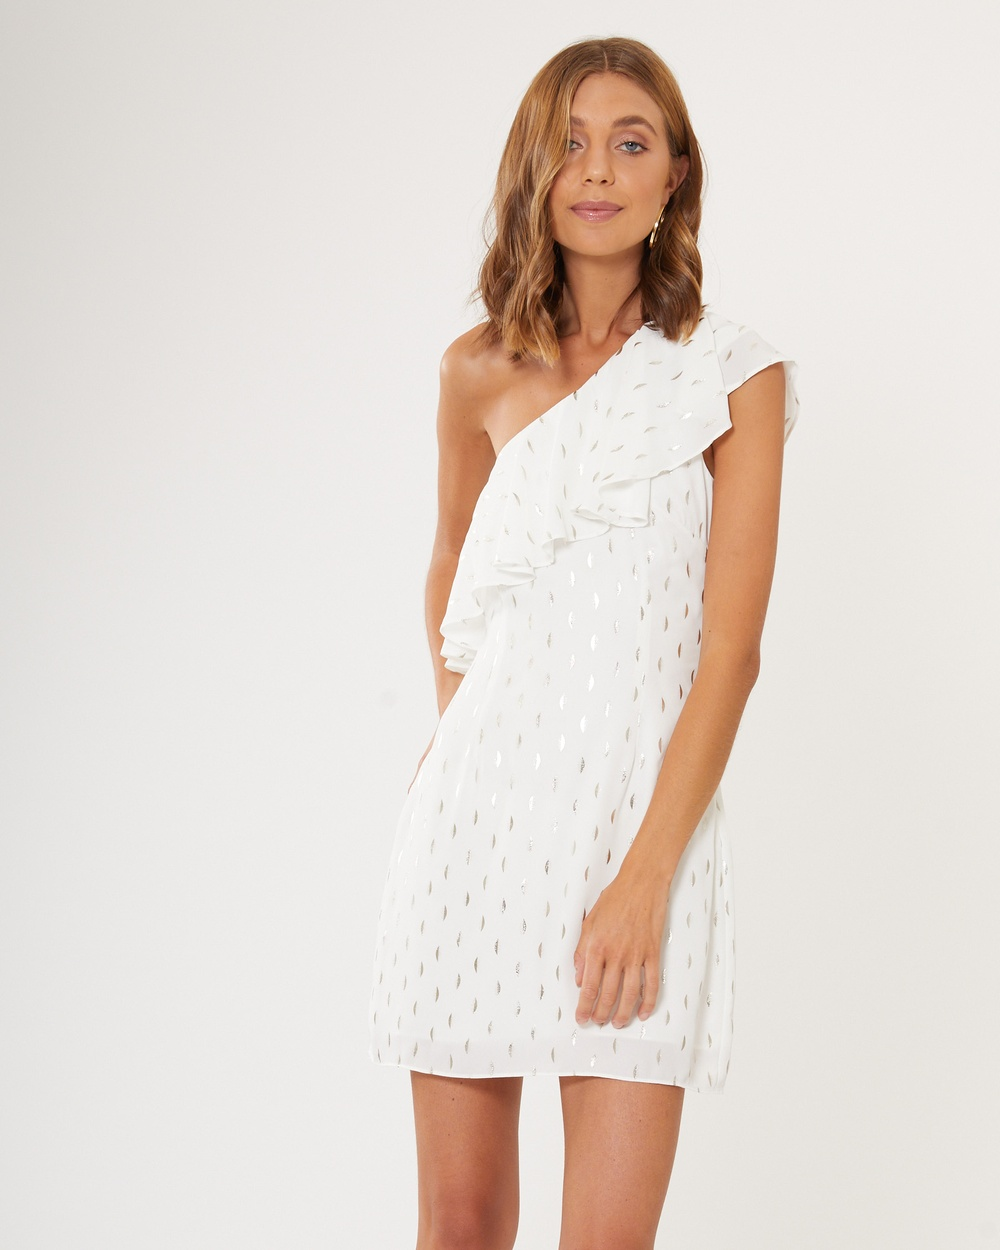 Calli Lola Frill Dress Printed Dresses White Lola Frill Dress